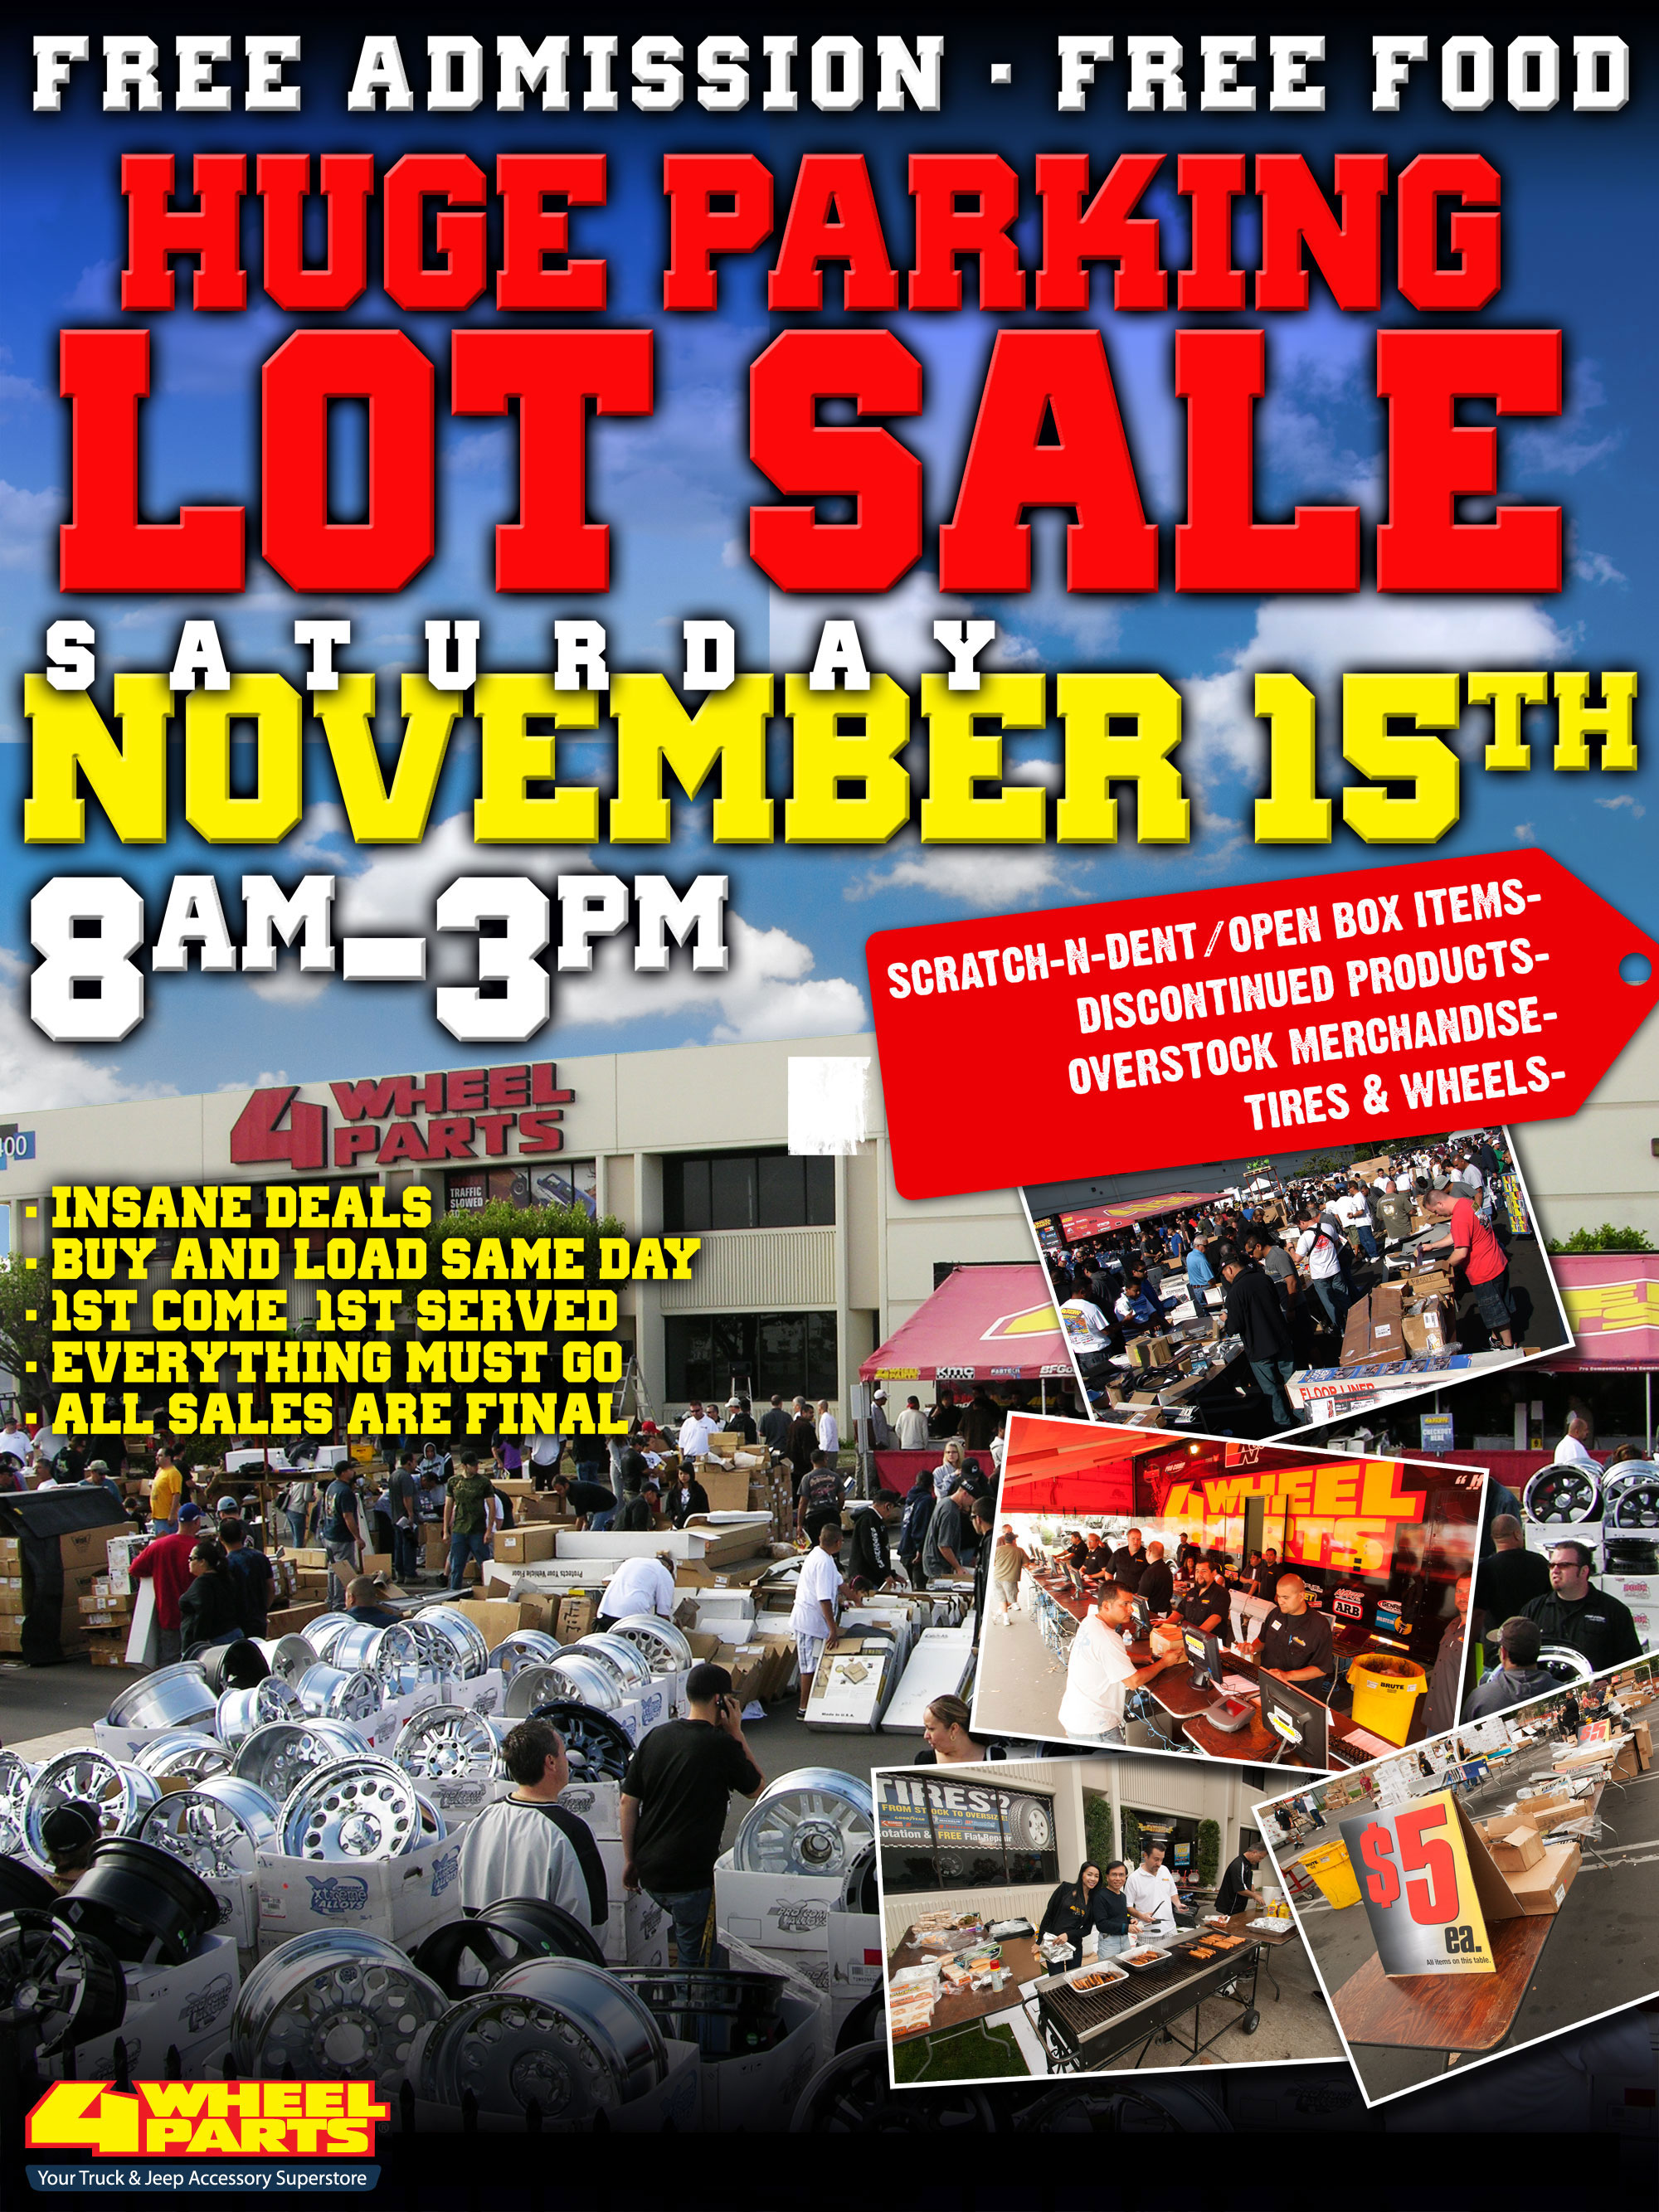 4 Wheel Parts Hosts Huge Parking Lot Sale